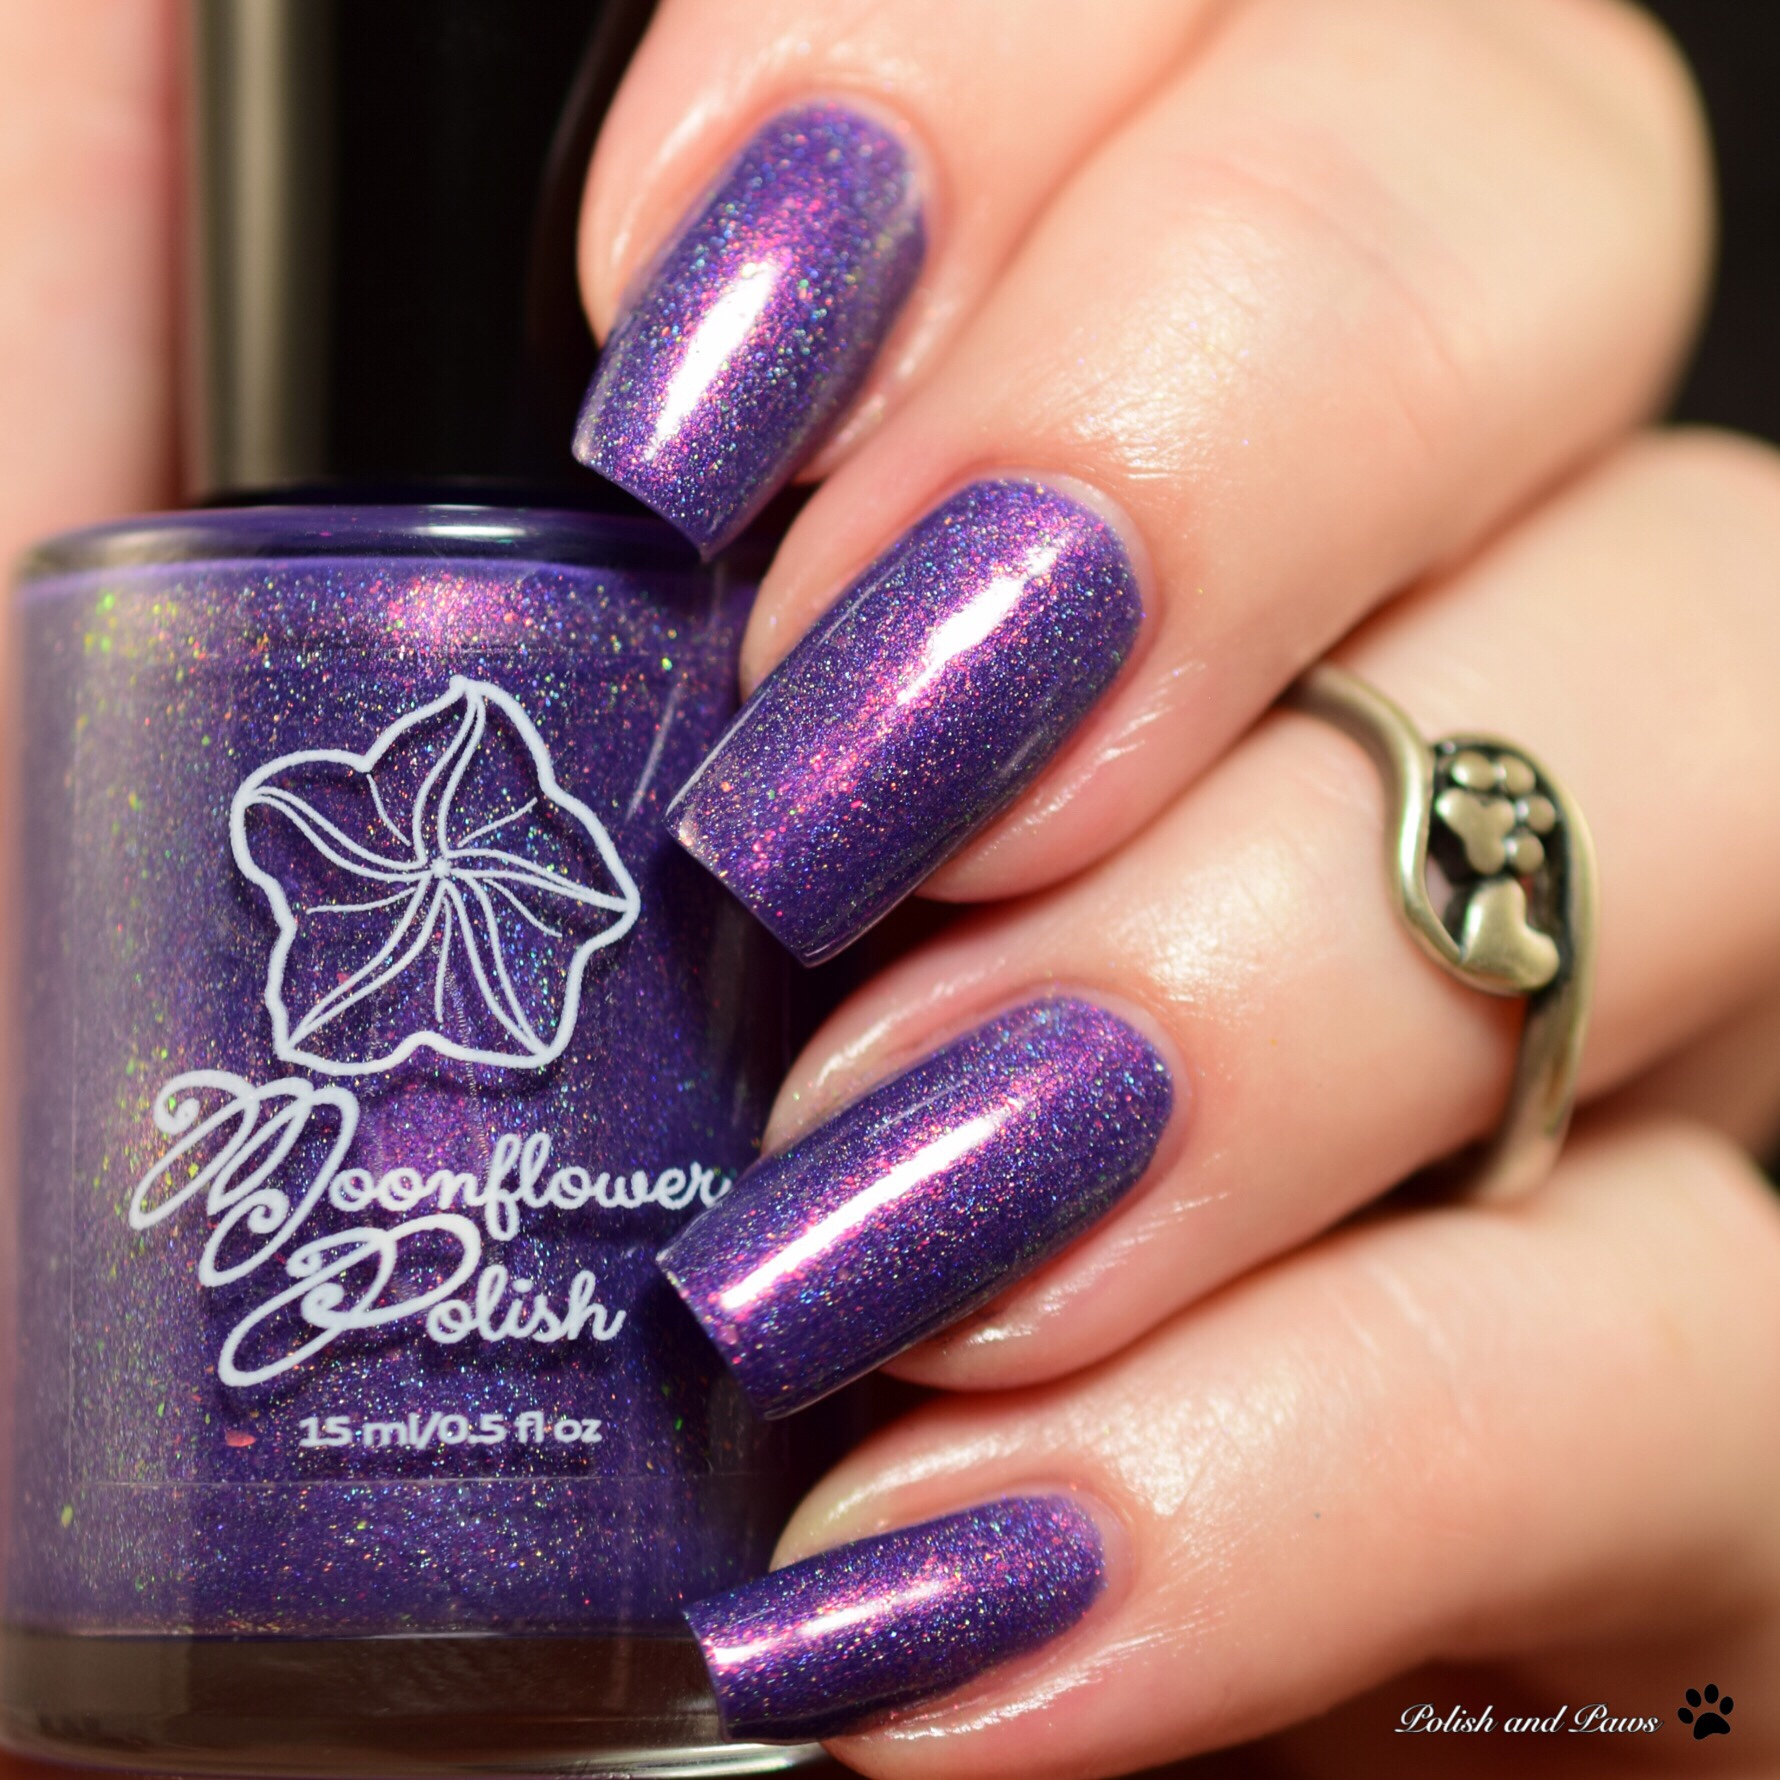 Moonflower Polish One More Light